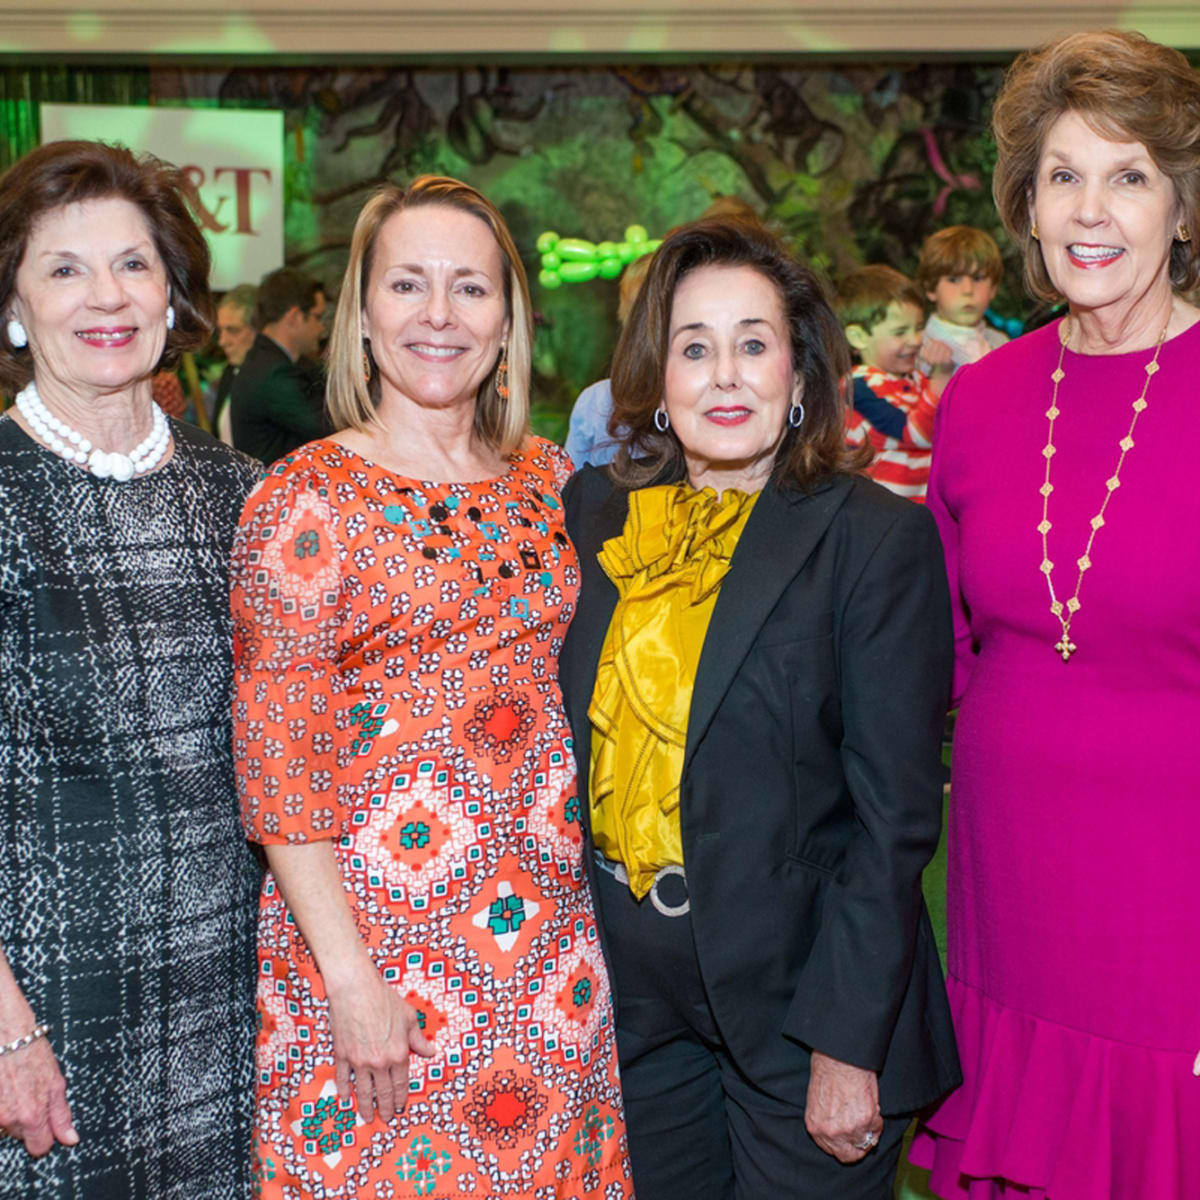 Houston Symphony Children's Fashion Show, March 2016,Mary Lynn Marks, Darlene Clark, Betty Tutor, Lilly Andress